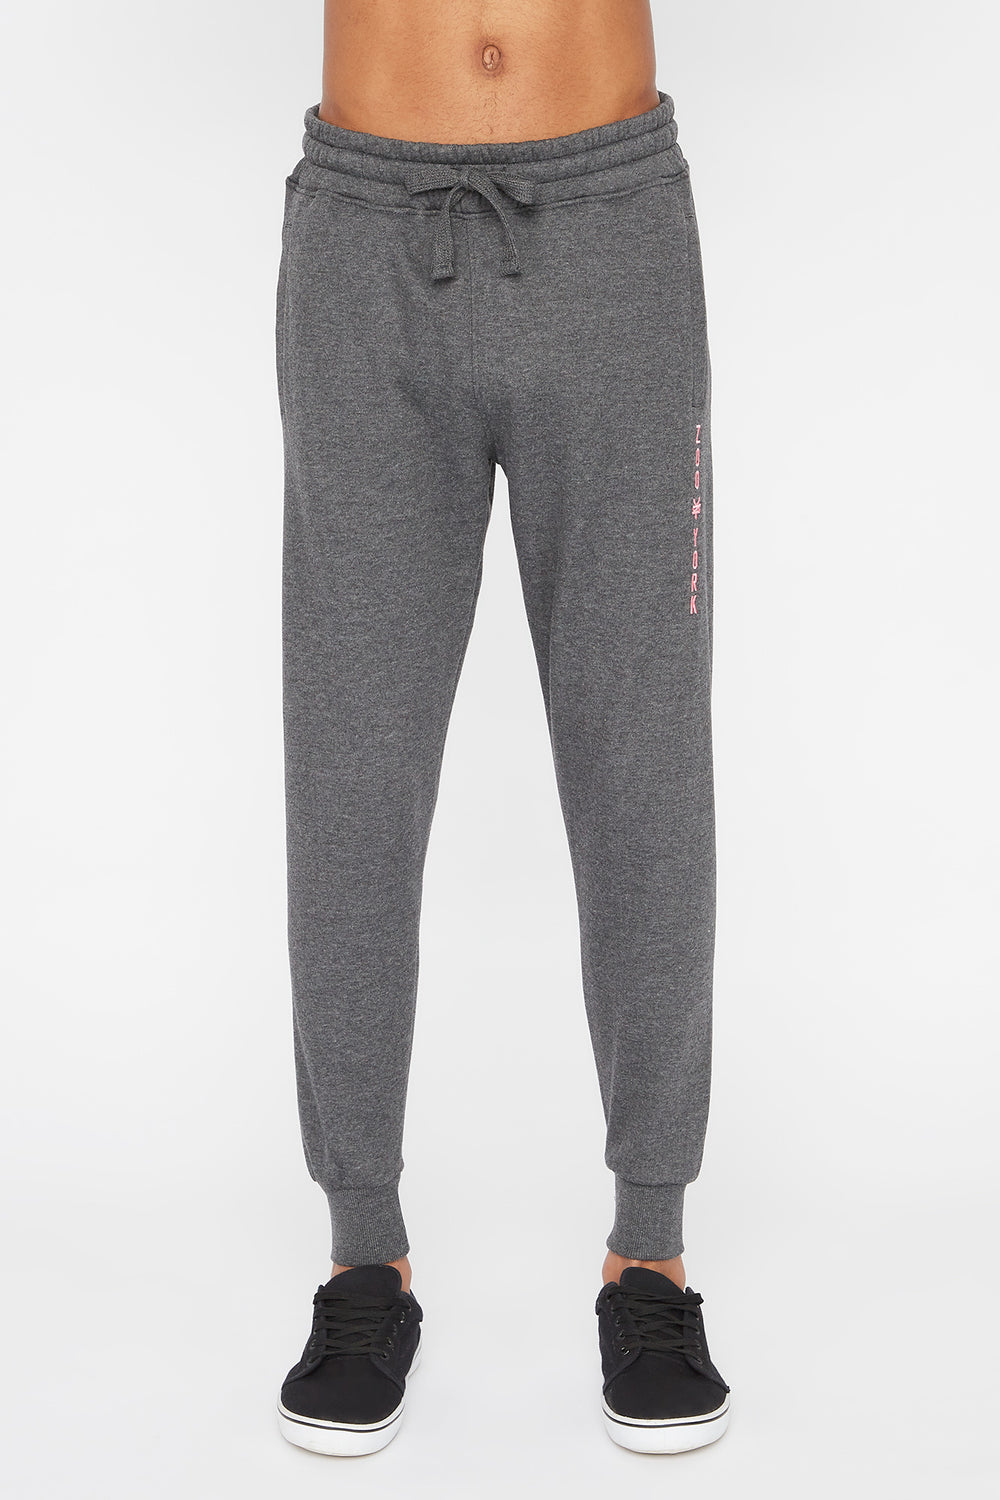 Zoo York Mens Embroidered Logo Jogger Charcoal